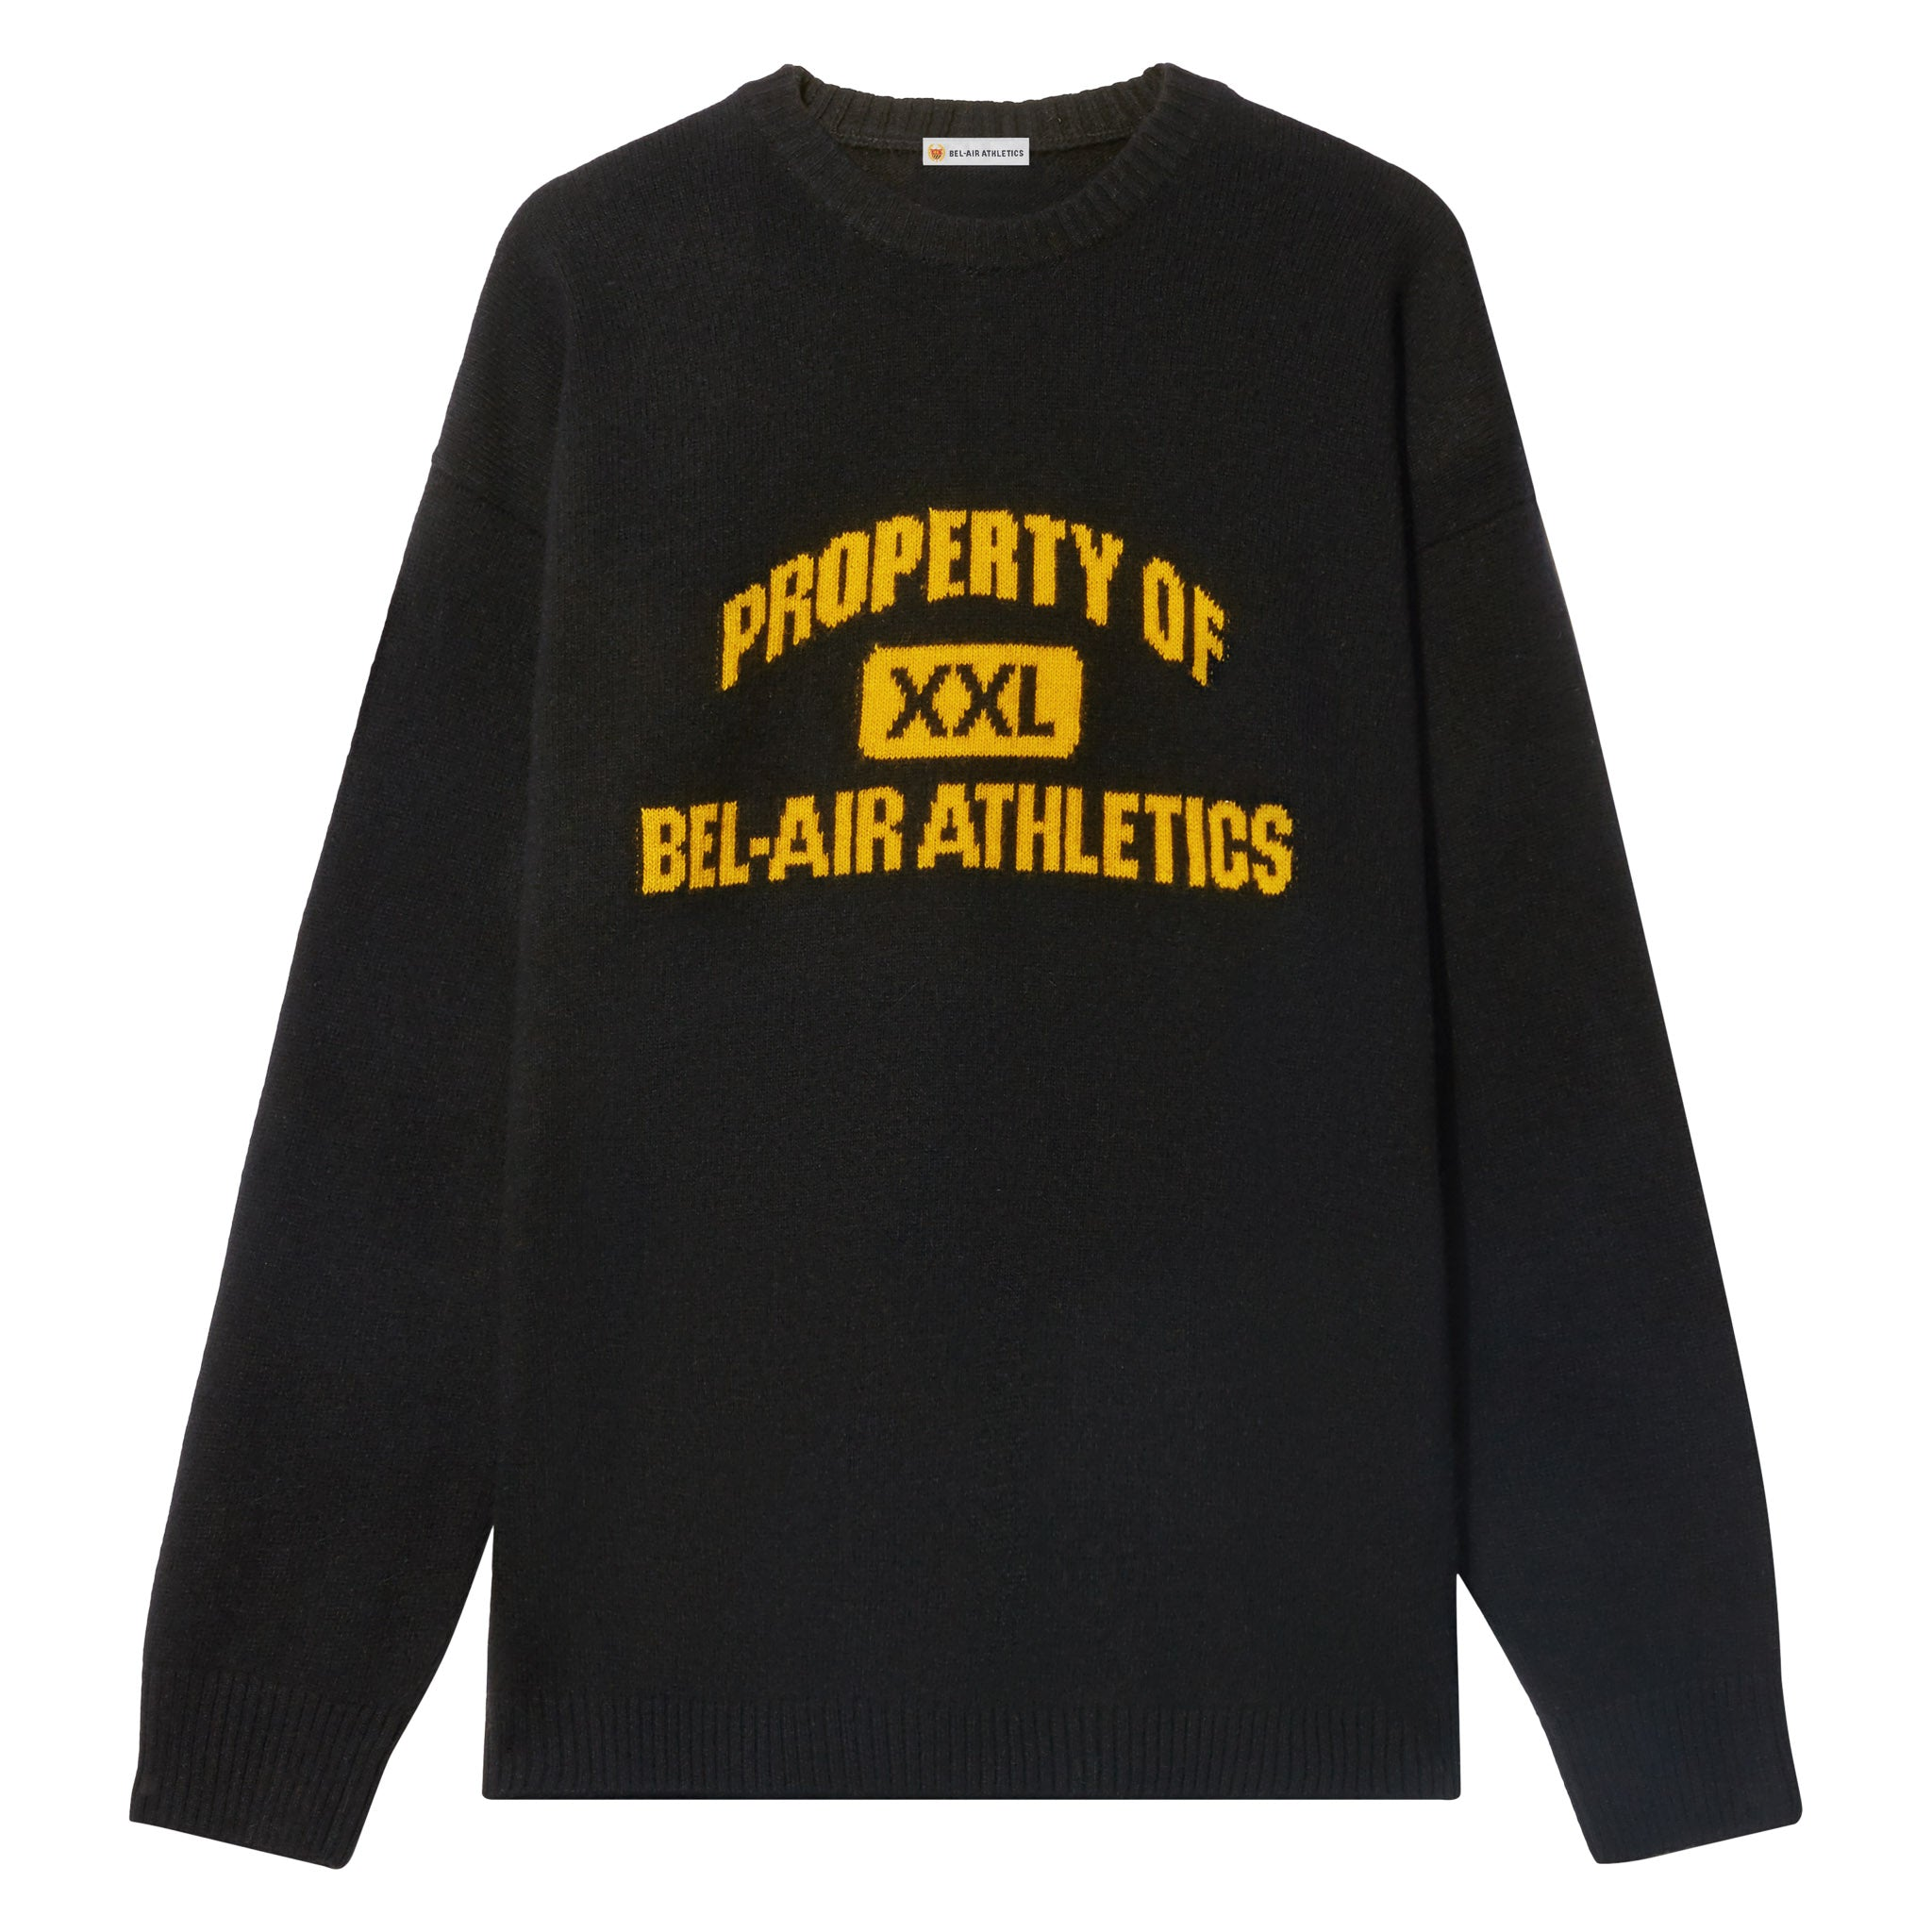 Property of Intarsia Knit - Vintage Black with Collegiate Gold Intarsia